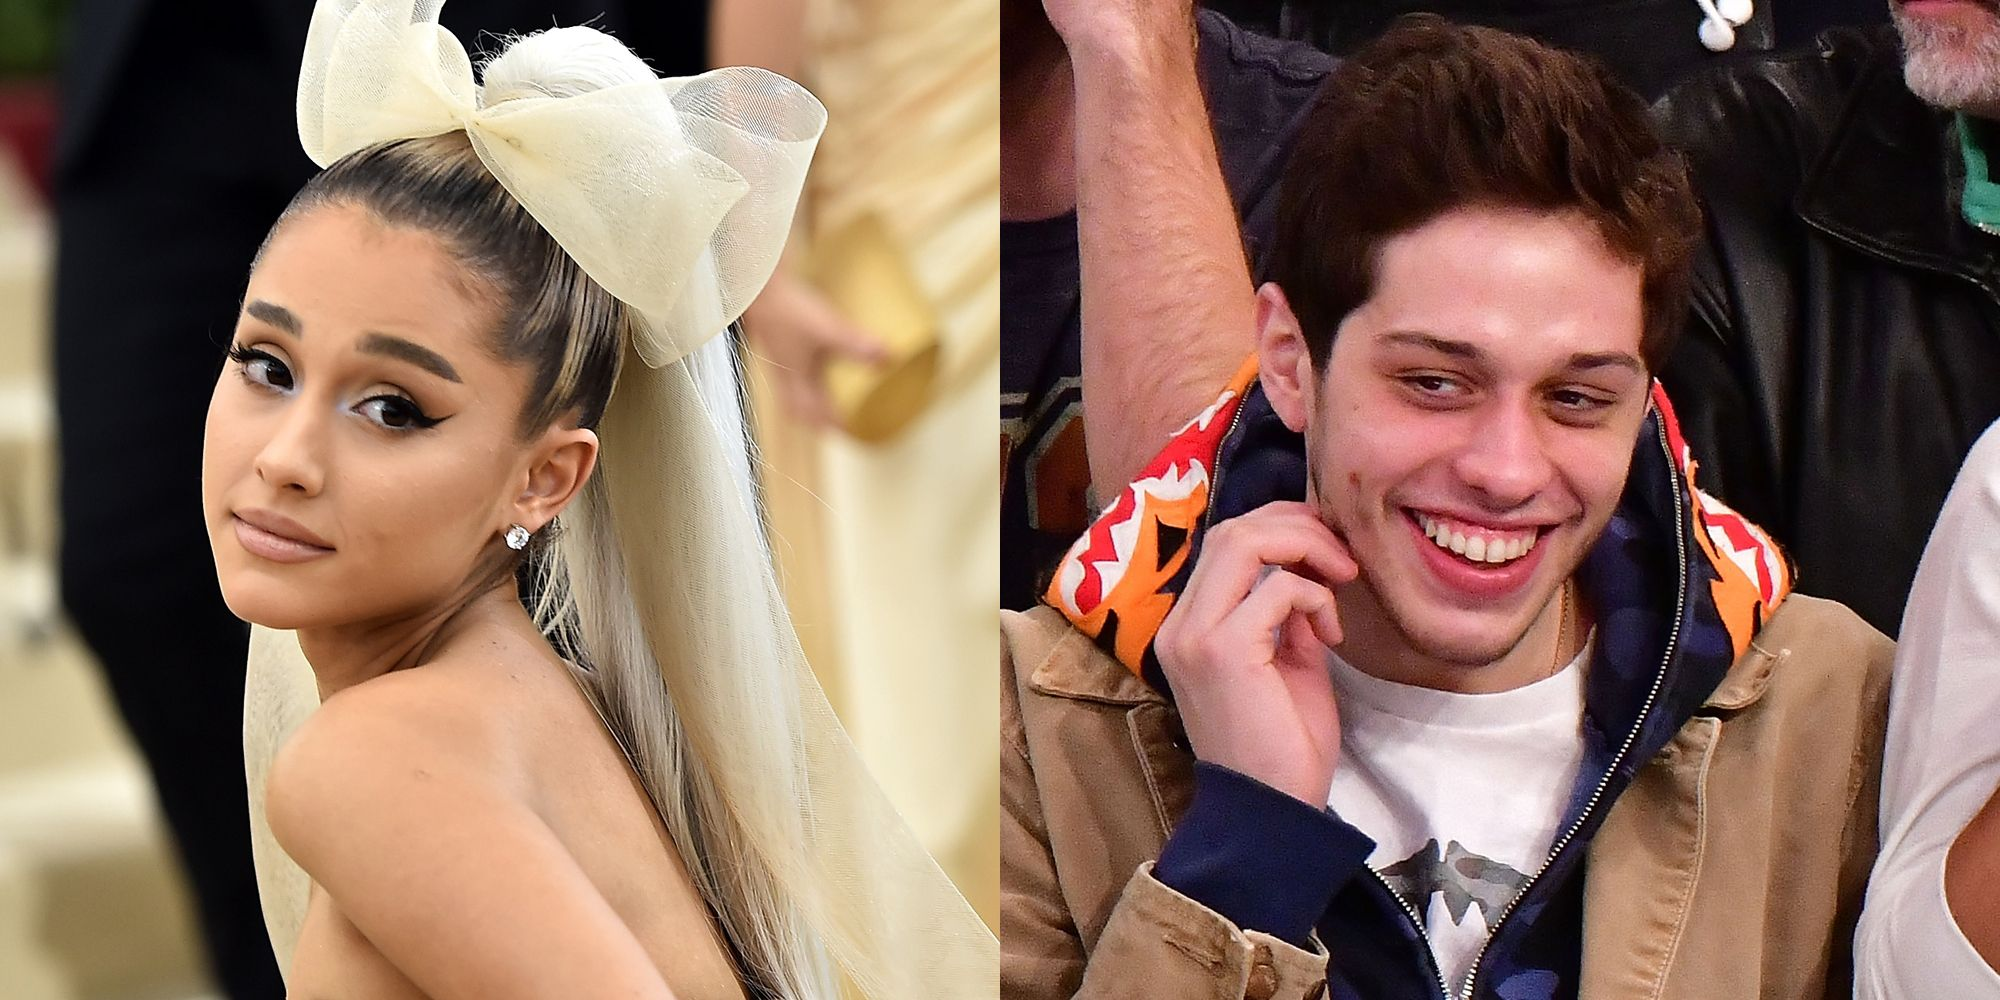 Who is ariana grande dating now